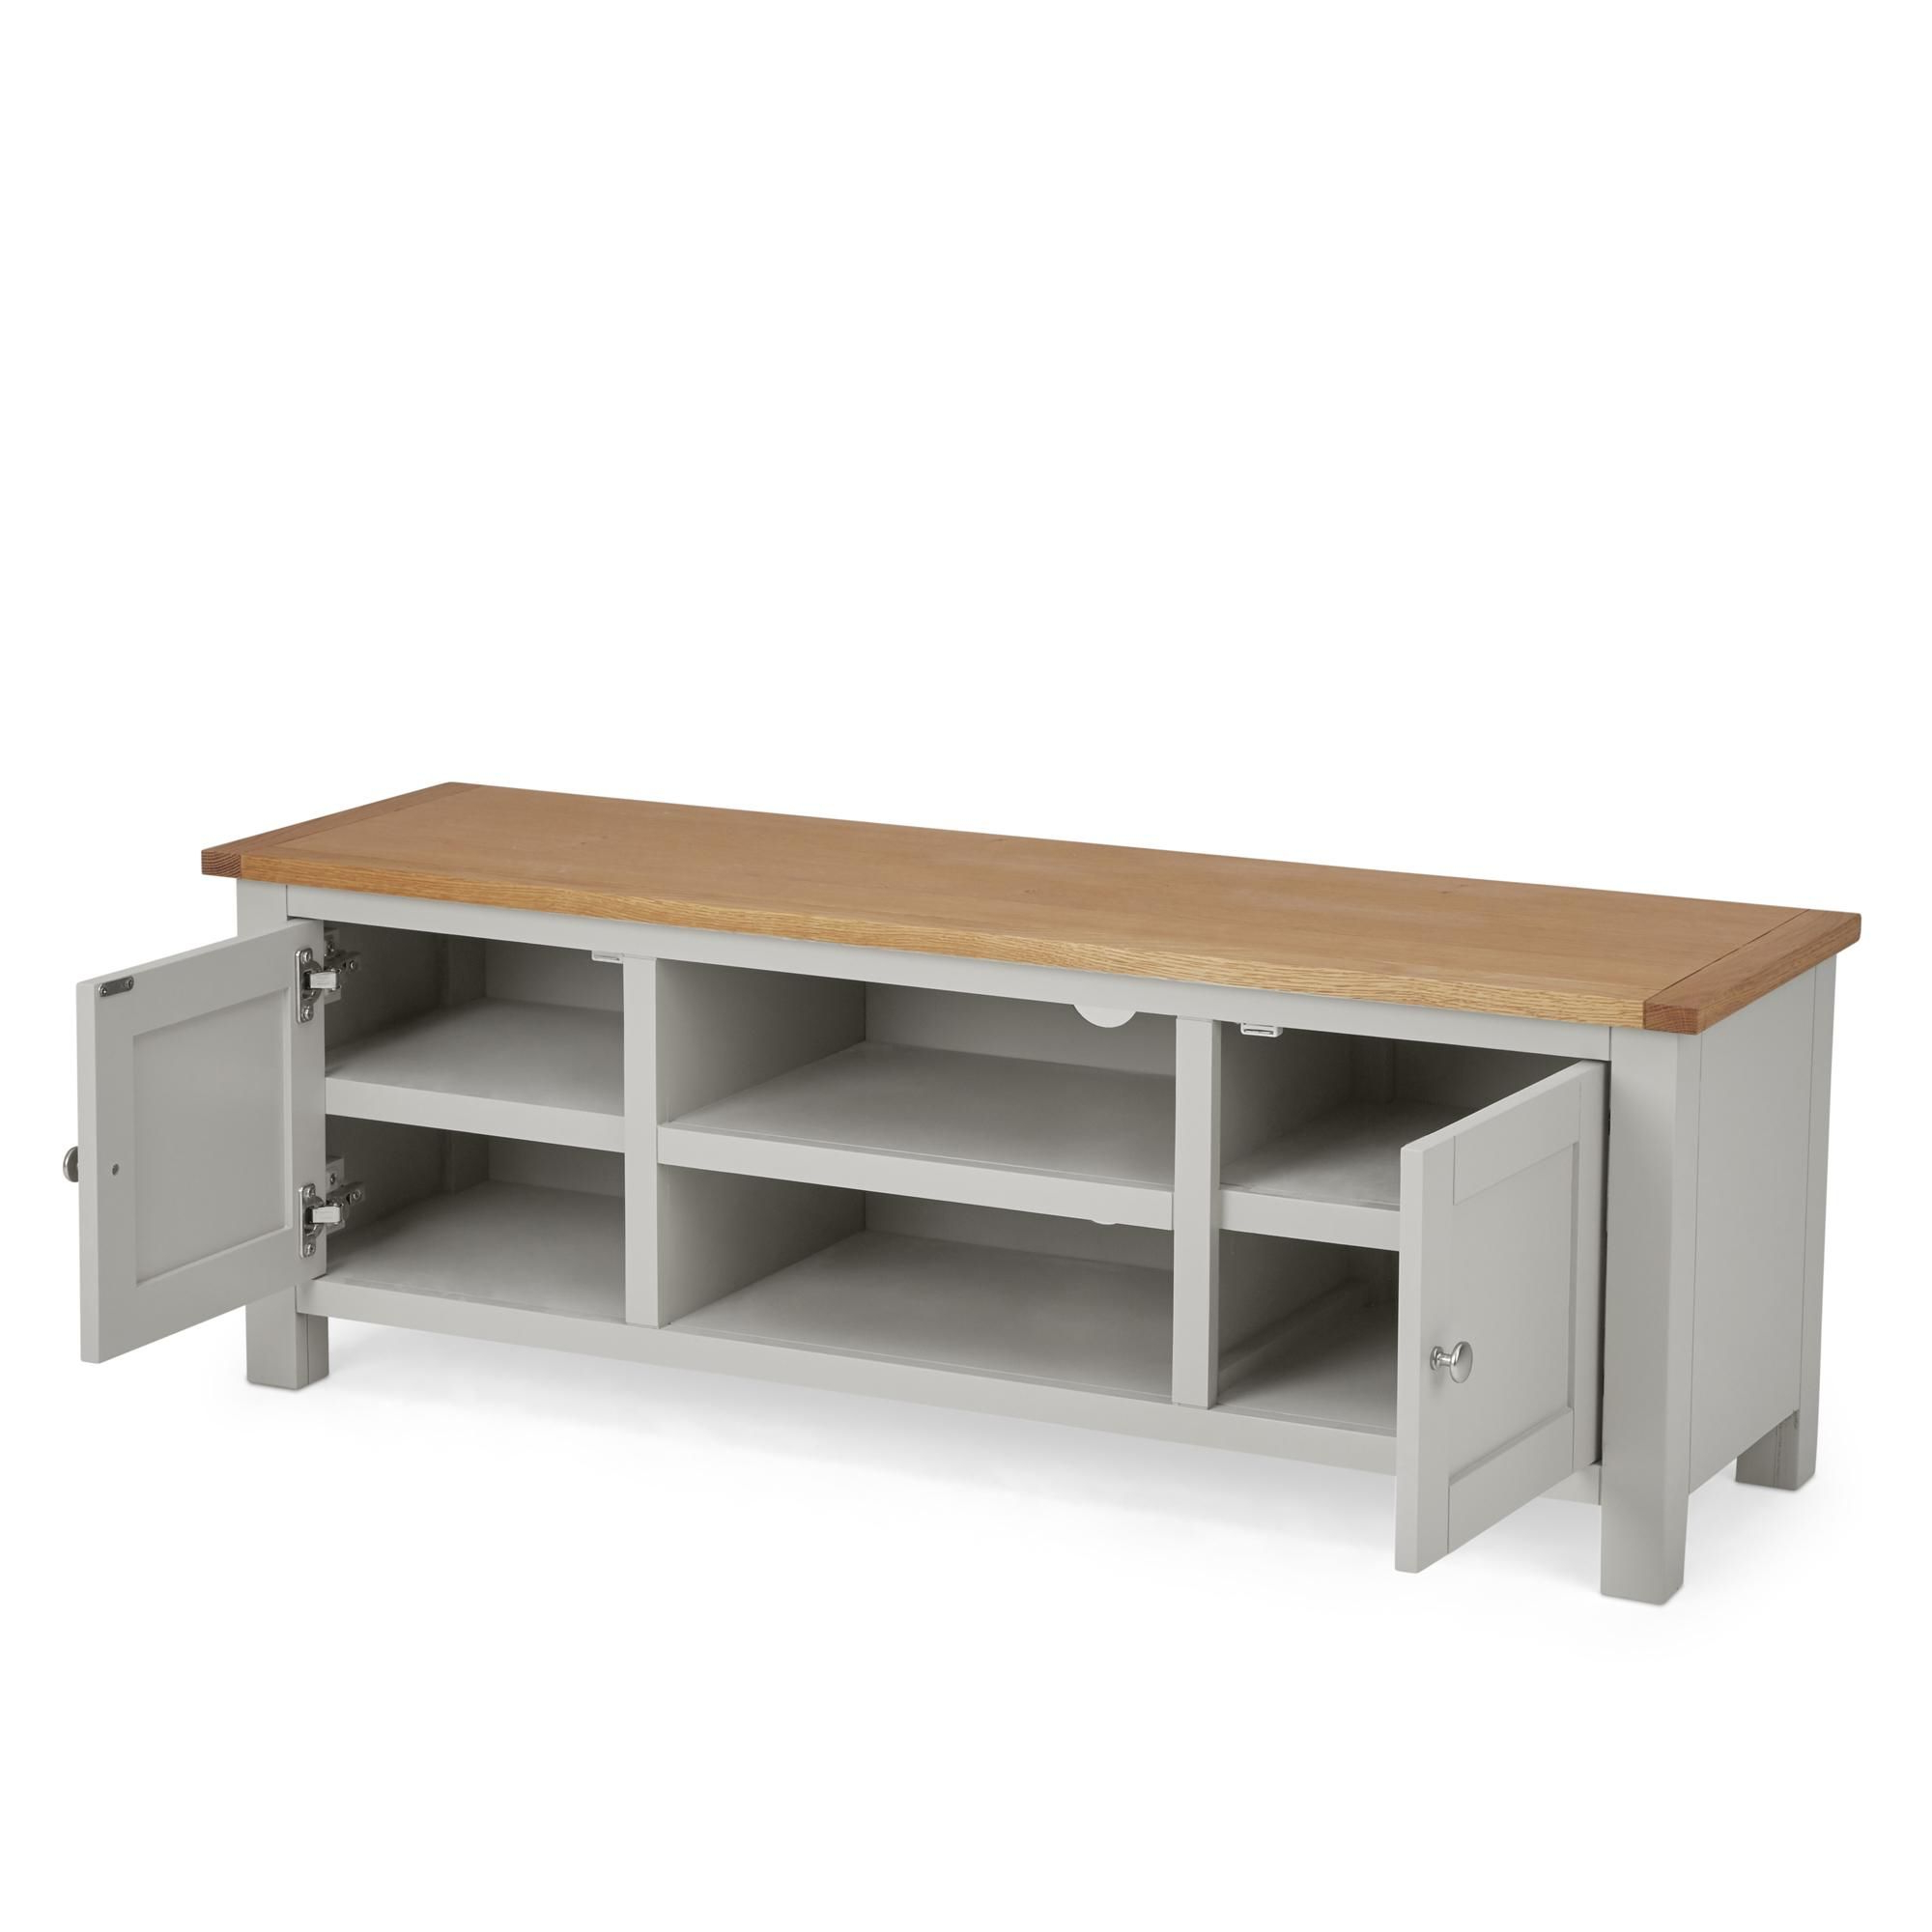 Bromley Grey Wide Tv Stand | Grey Tv Unit, Grey Tv Stand Pertaining To Bromley Oak Tv Stands (View 13 of 20)